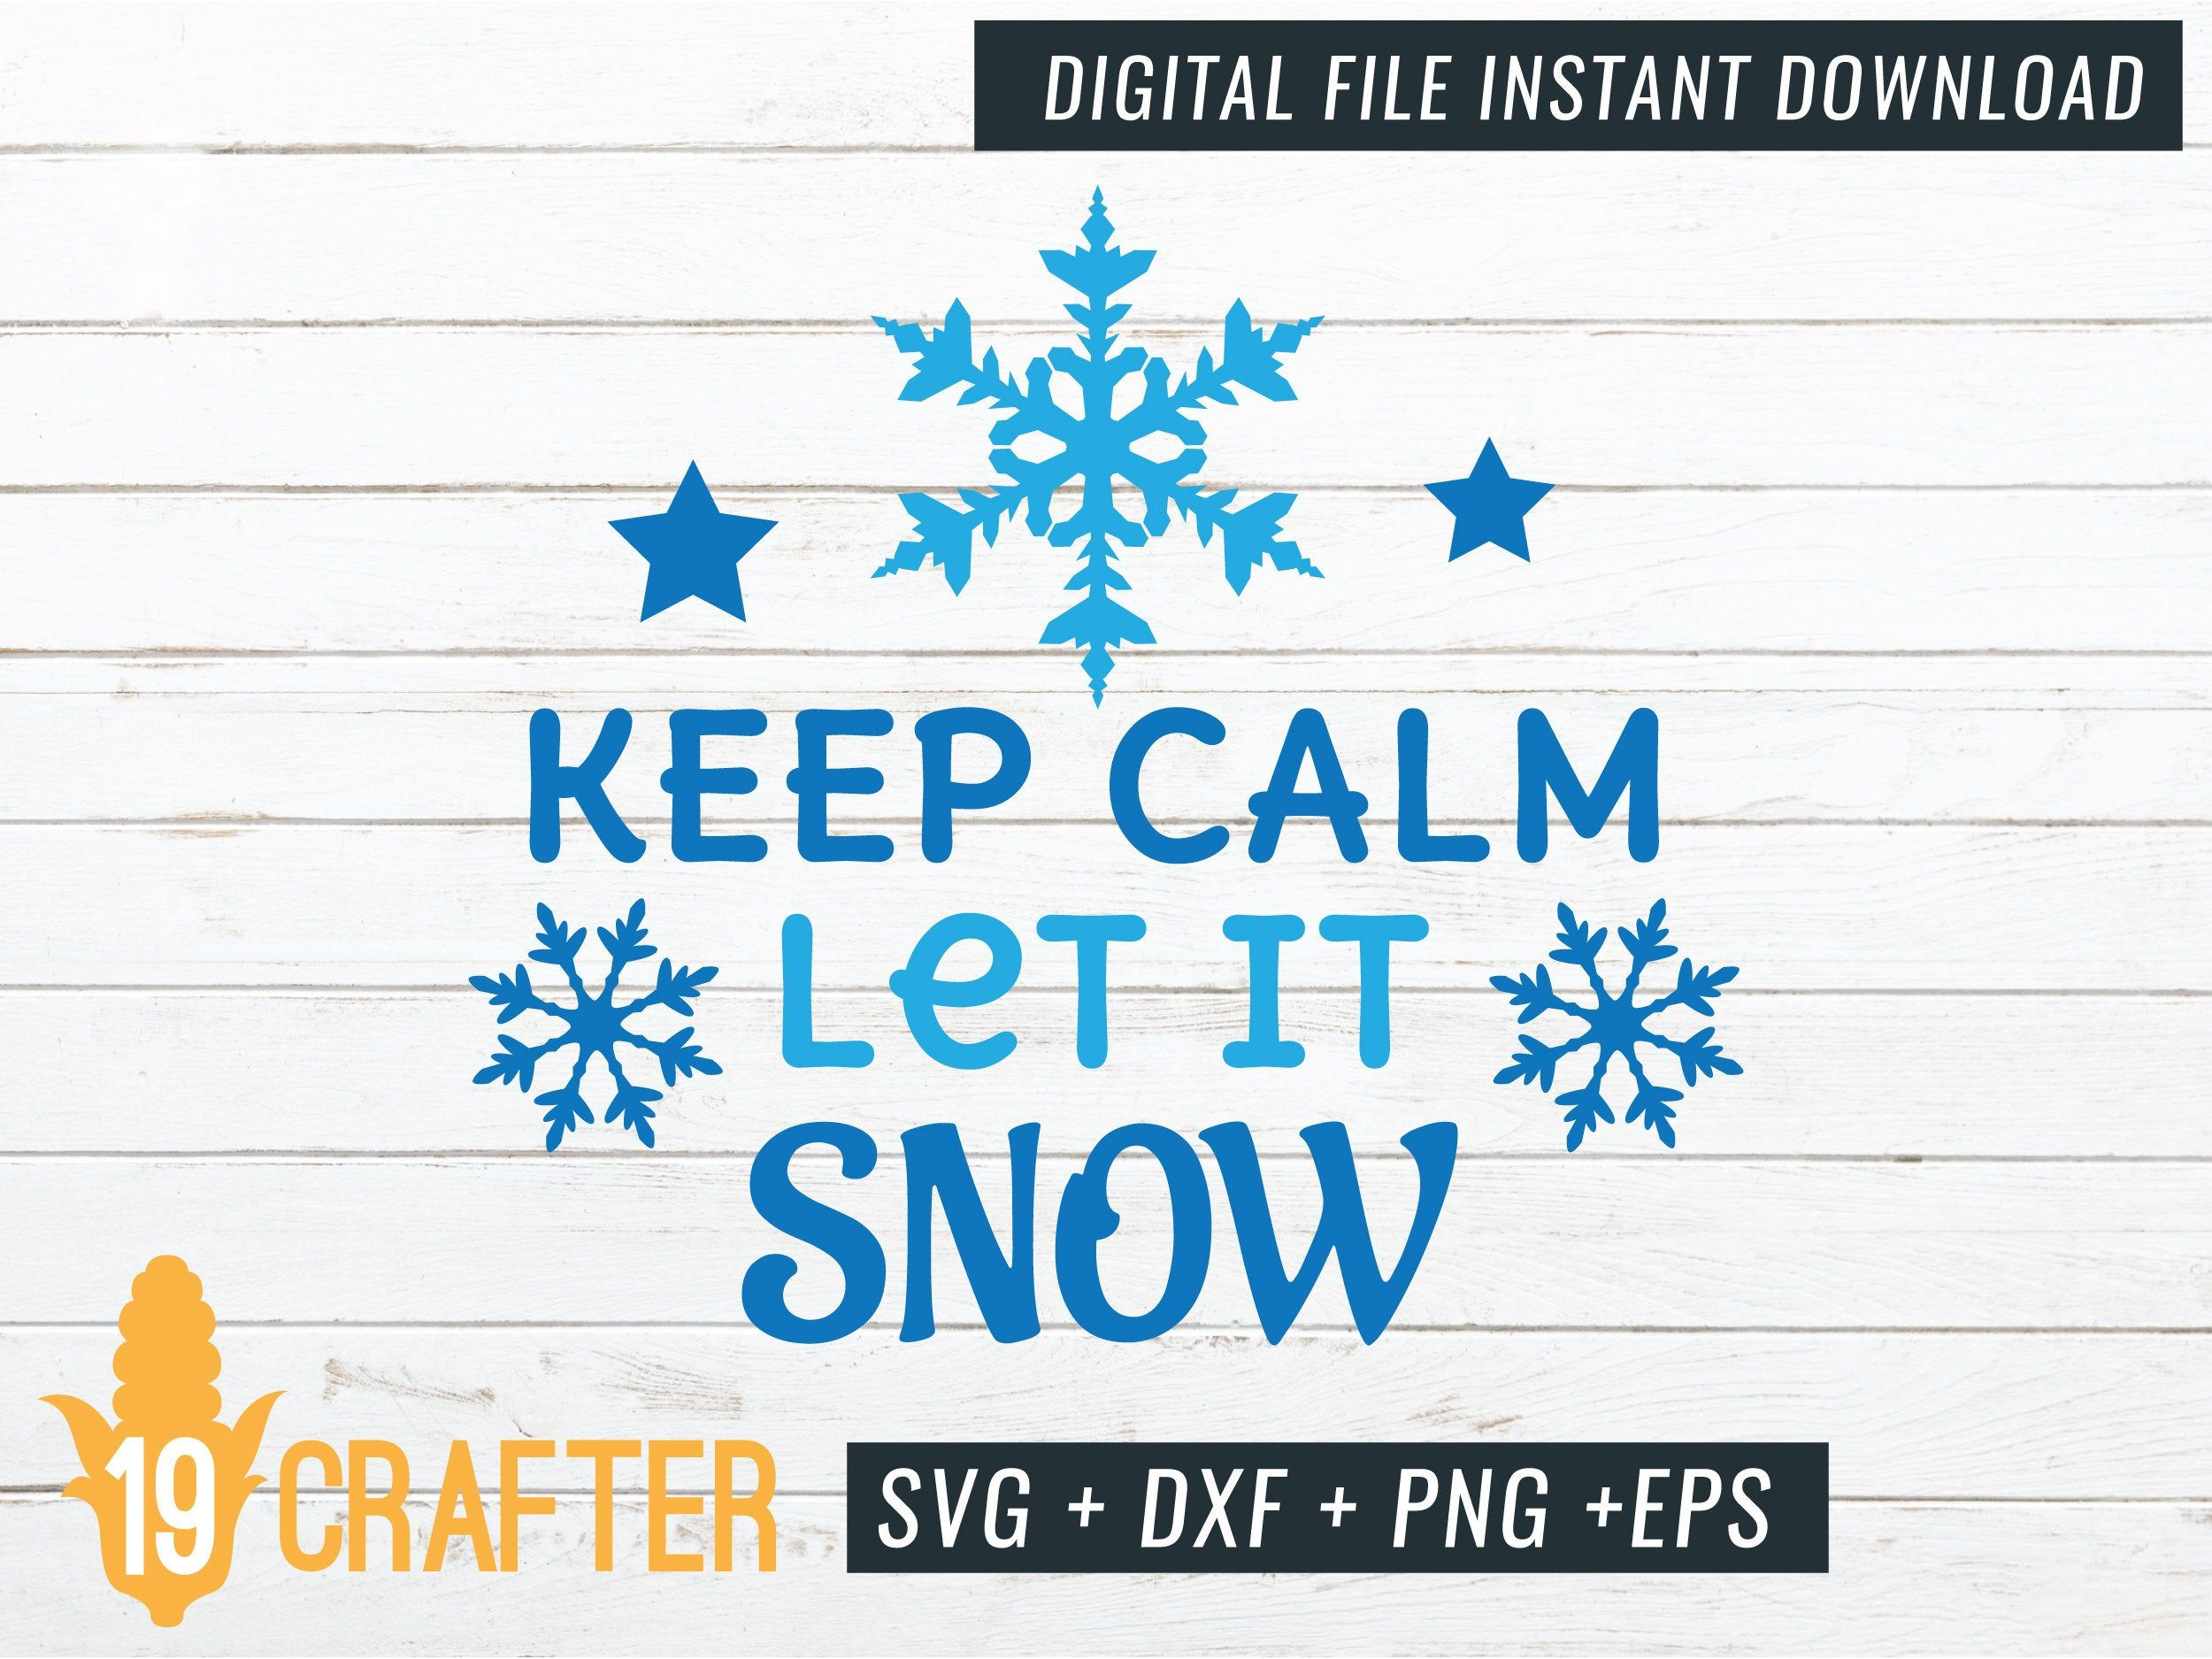 Keep Calm Let It Snow Christmas Winter Holiday Svg Dxf Png Eps Etsy Winter Holidays Let It Be Let It Snow